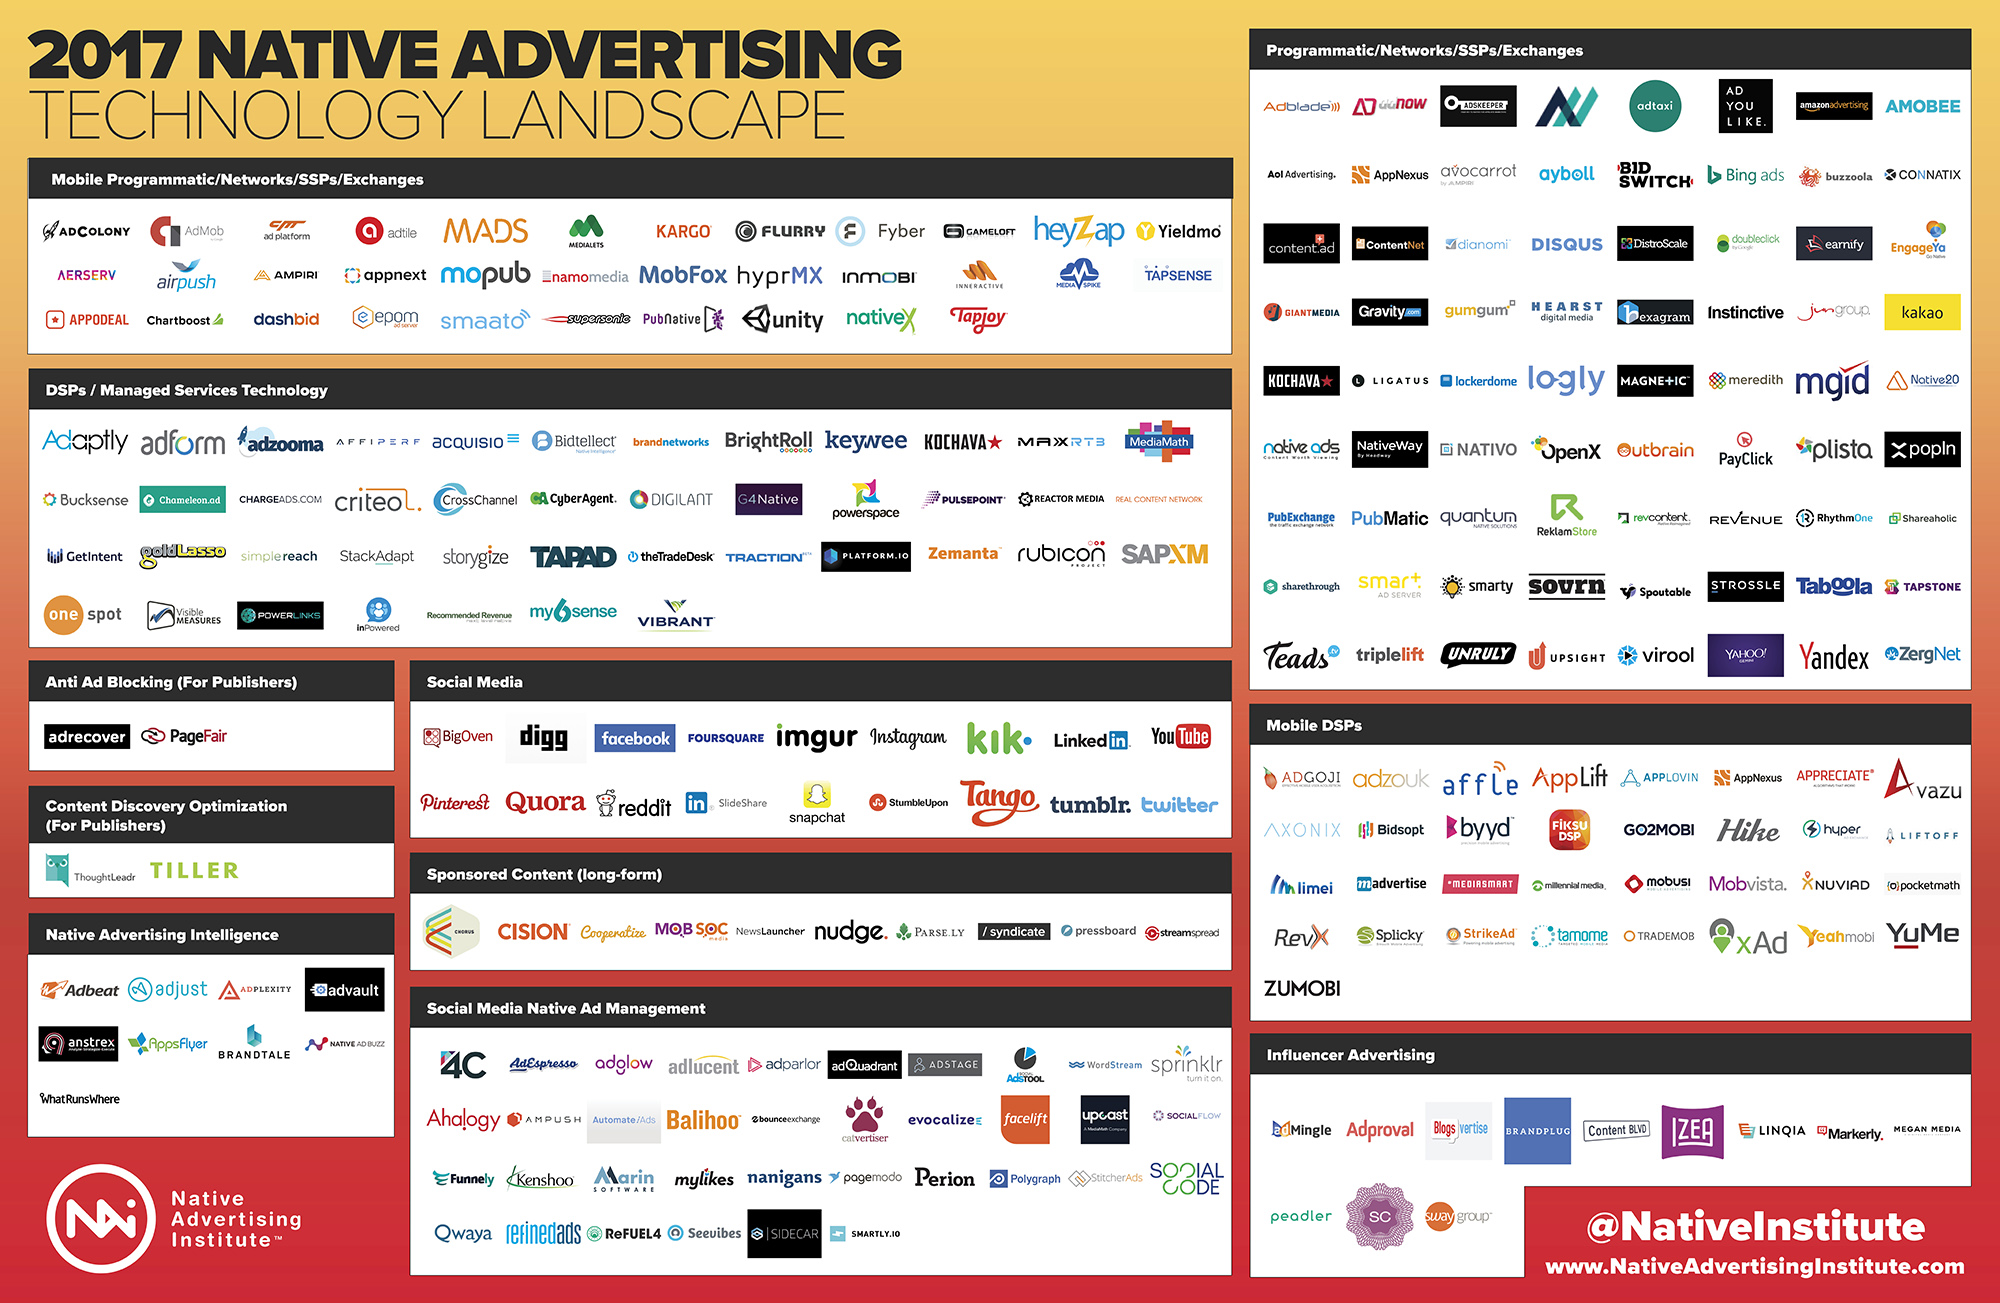 The 2017 Native Advertising Technology Landscape